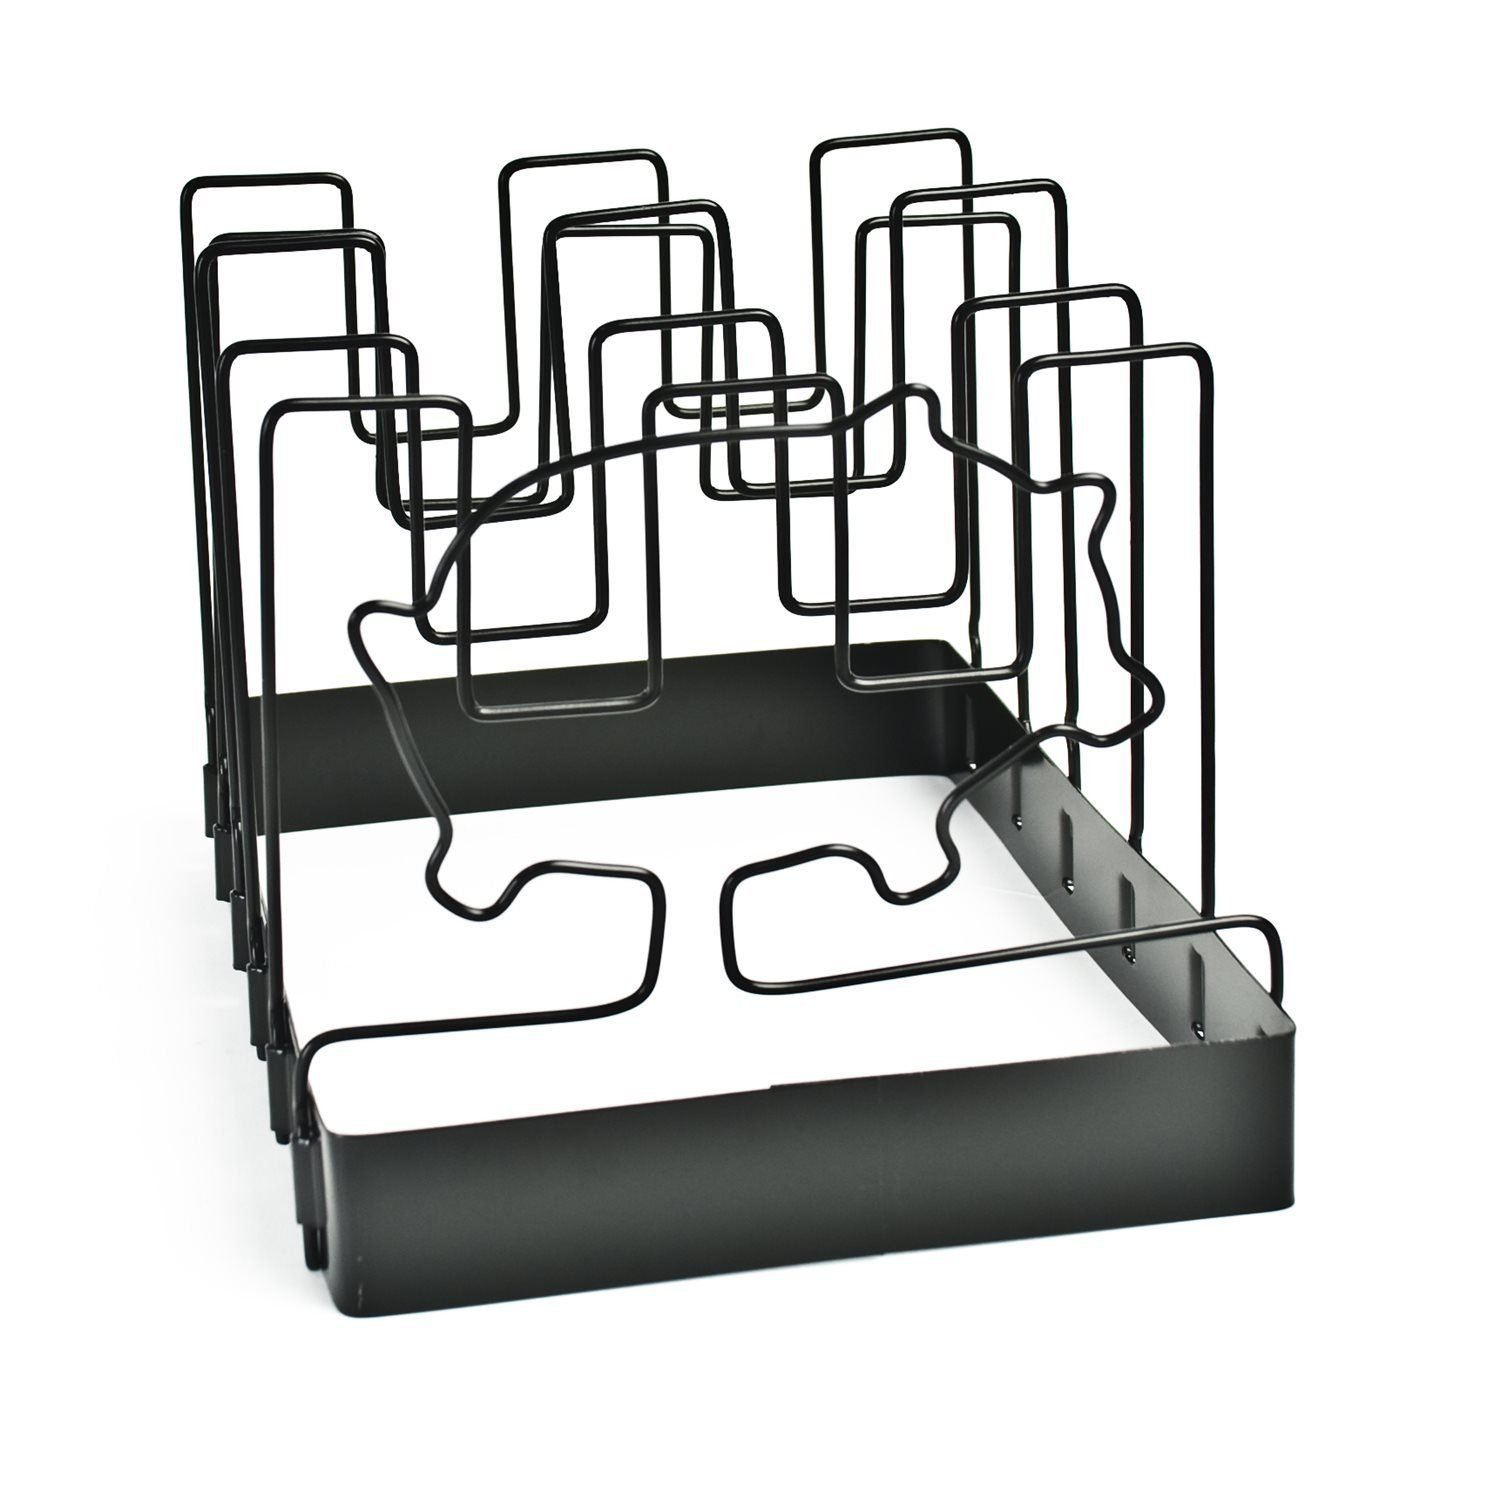 SpaceSaver Non-Stick Rib Rack 5-Slot Charcoal Companion